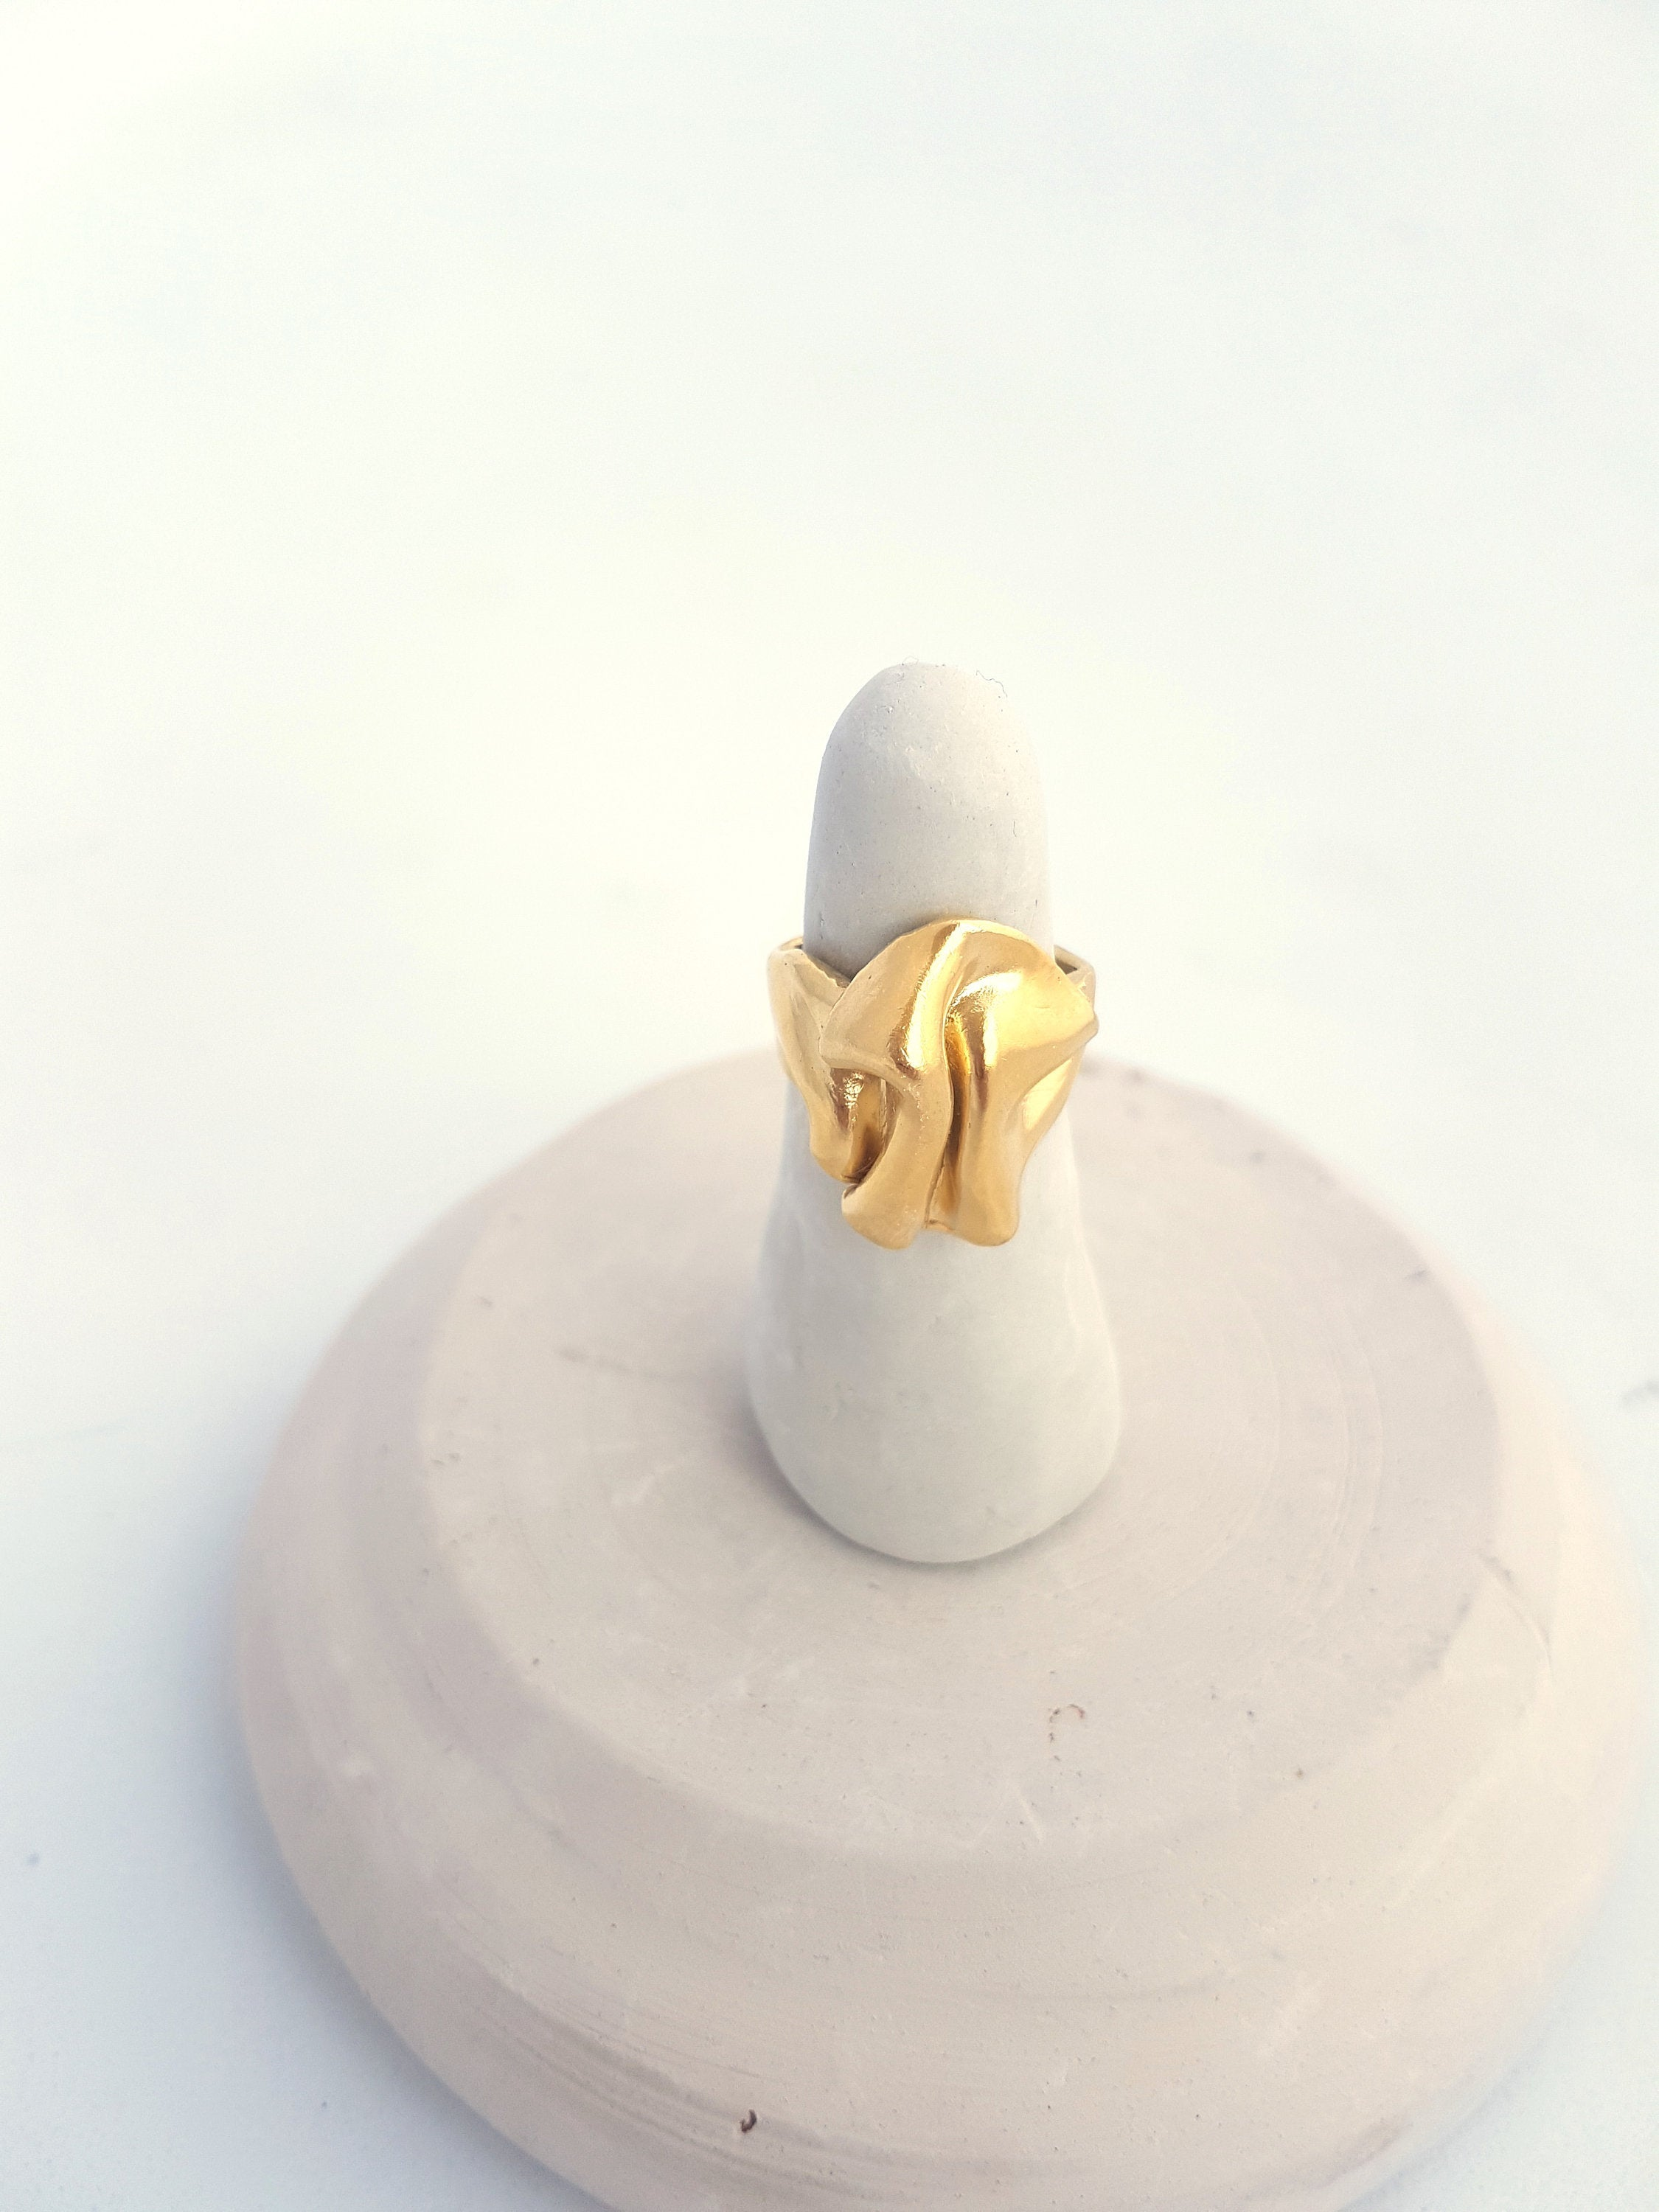 Gold cocktail ring, wave ring with an asymmetrical form- Big statement ring